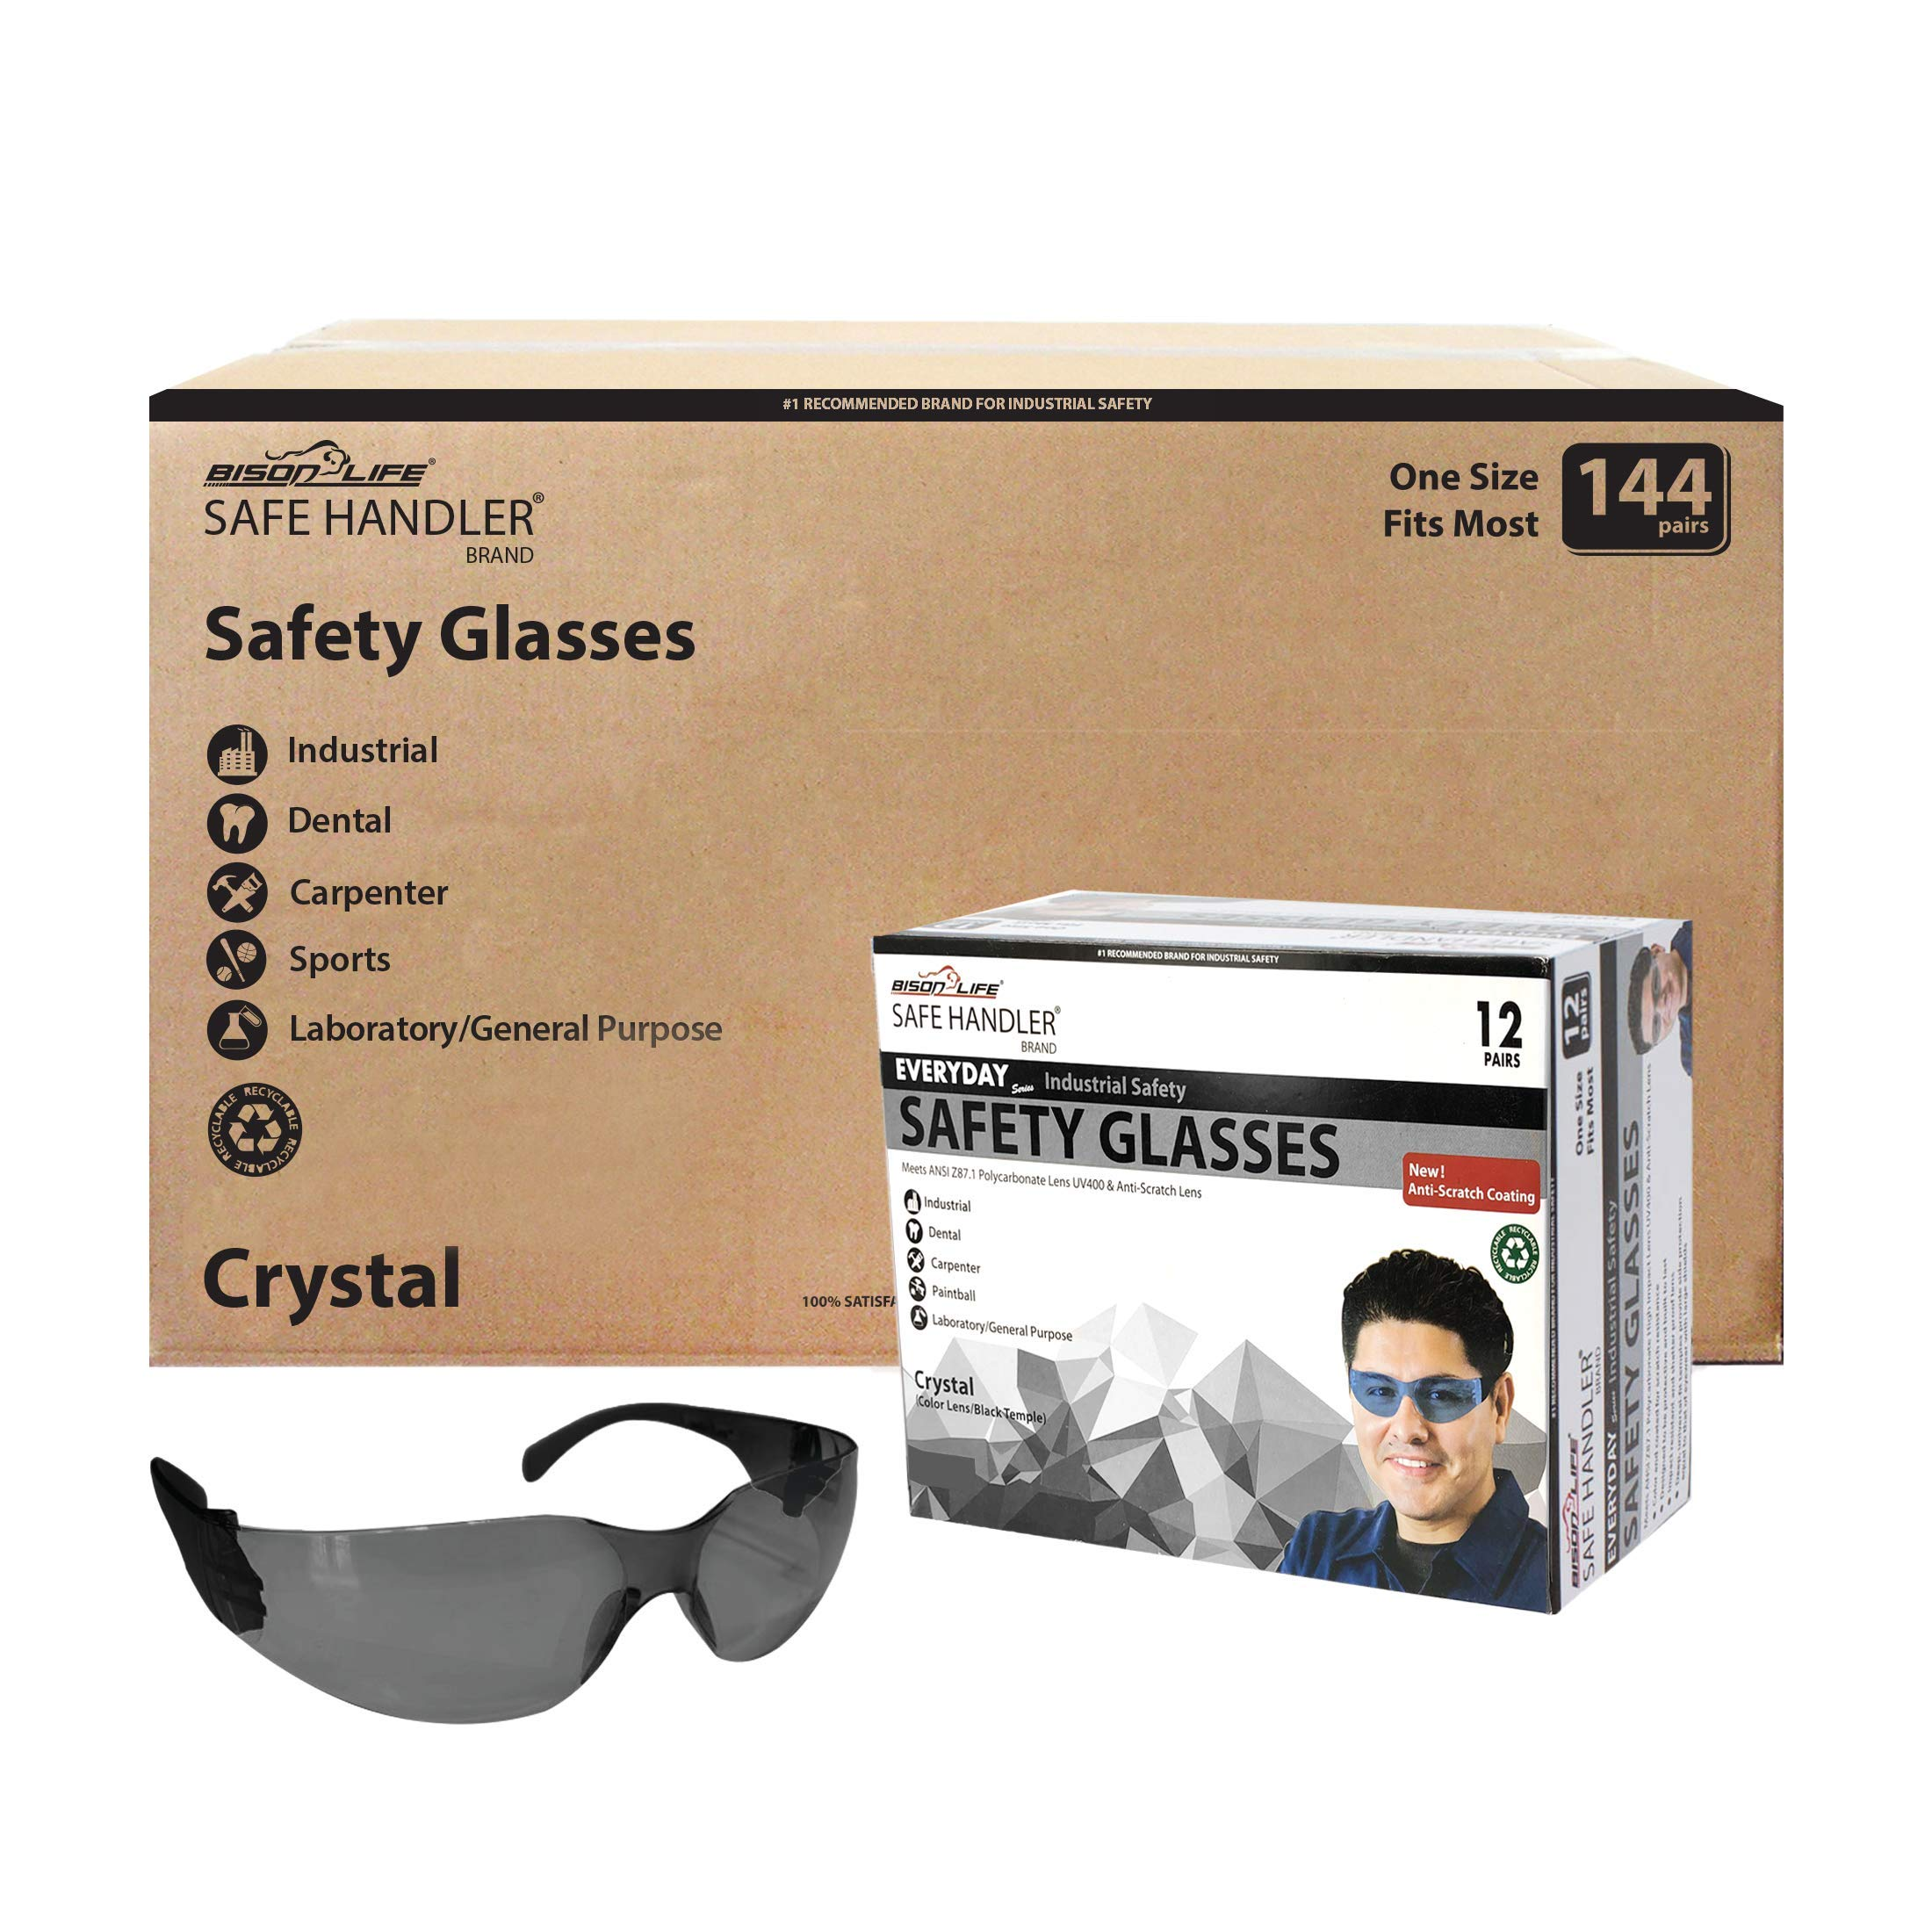 SAFE HANDLER Protective Safety Glasses, Black Polycarbonate Impact and Ballistic Resistant Lens - Black Temple (Case of 12 Boxes, 144 Pairs Total)